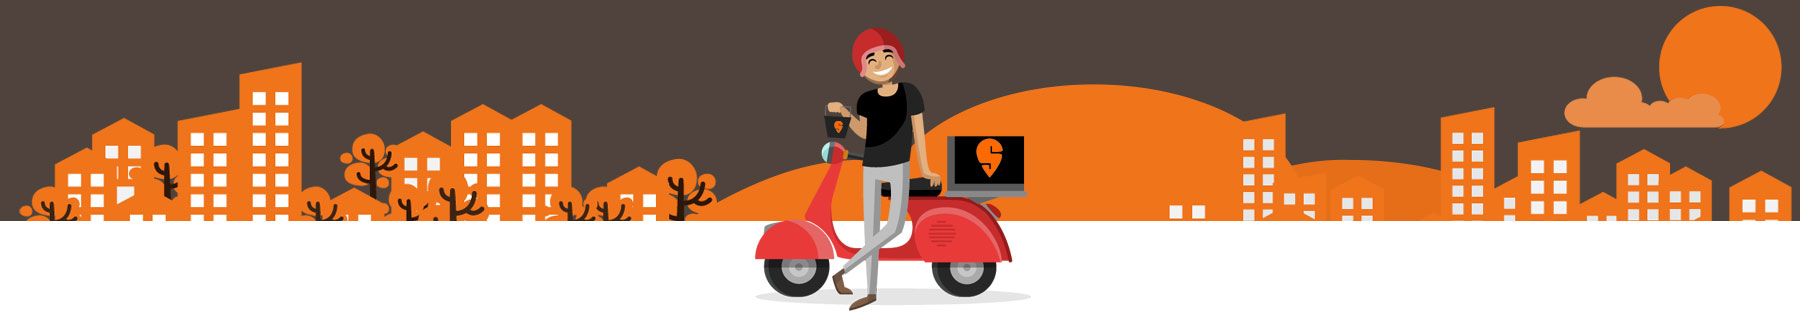 swiggy delivery mobile app ui